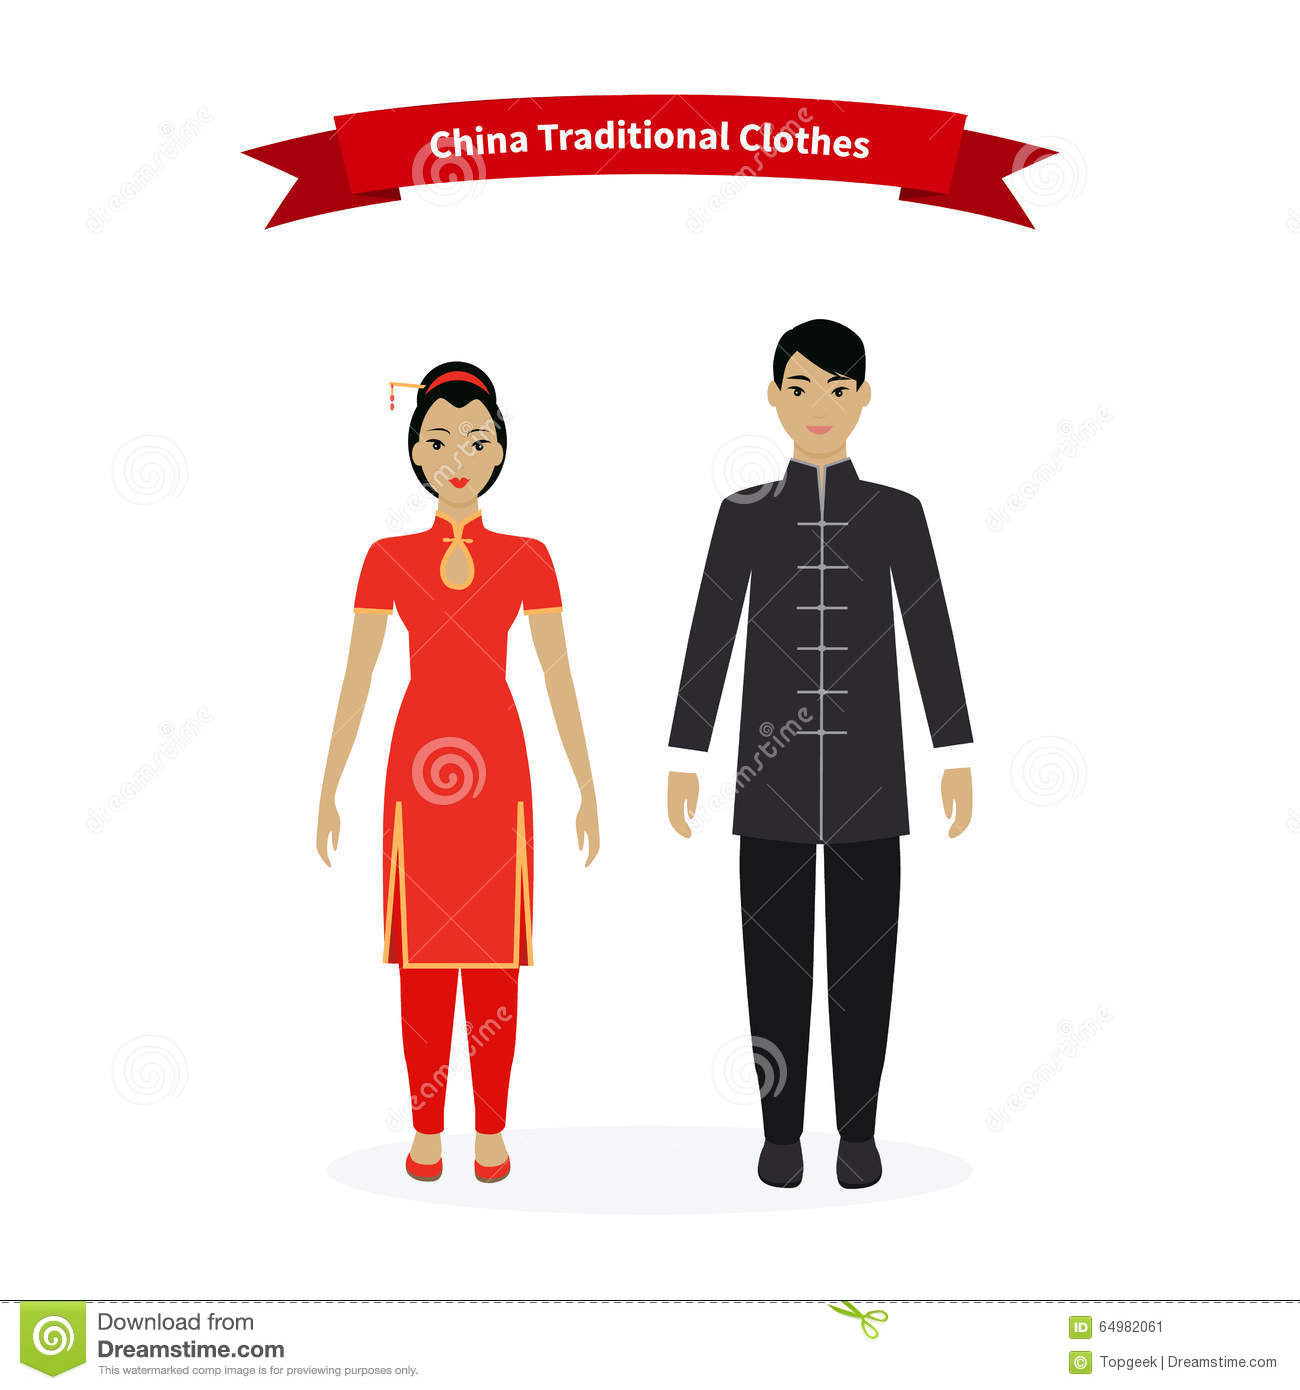 a comparison of united states and hong kongs wedding customs and traditions A comparative analysis of ratings, classification and censorship • united states • hong kong (film ordinance) • united states.